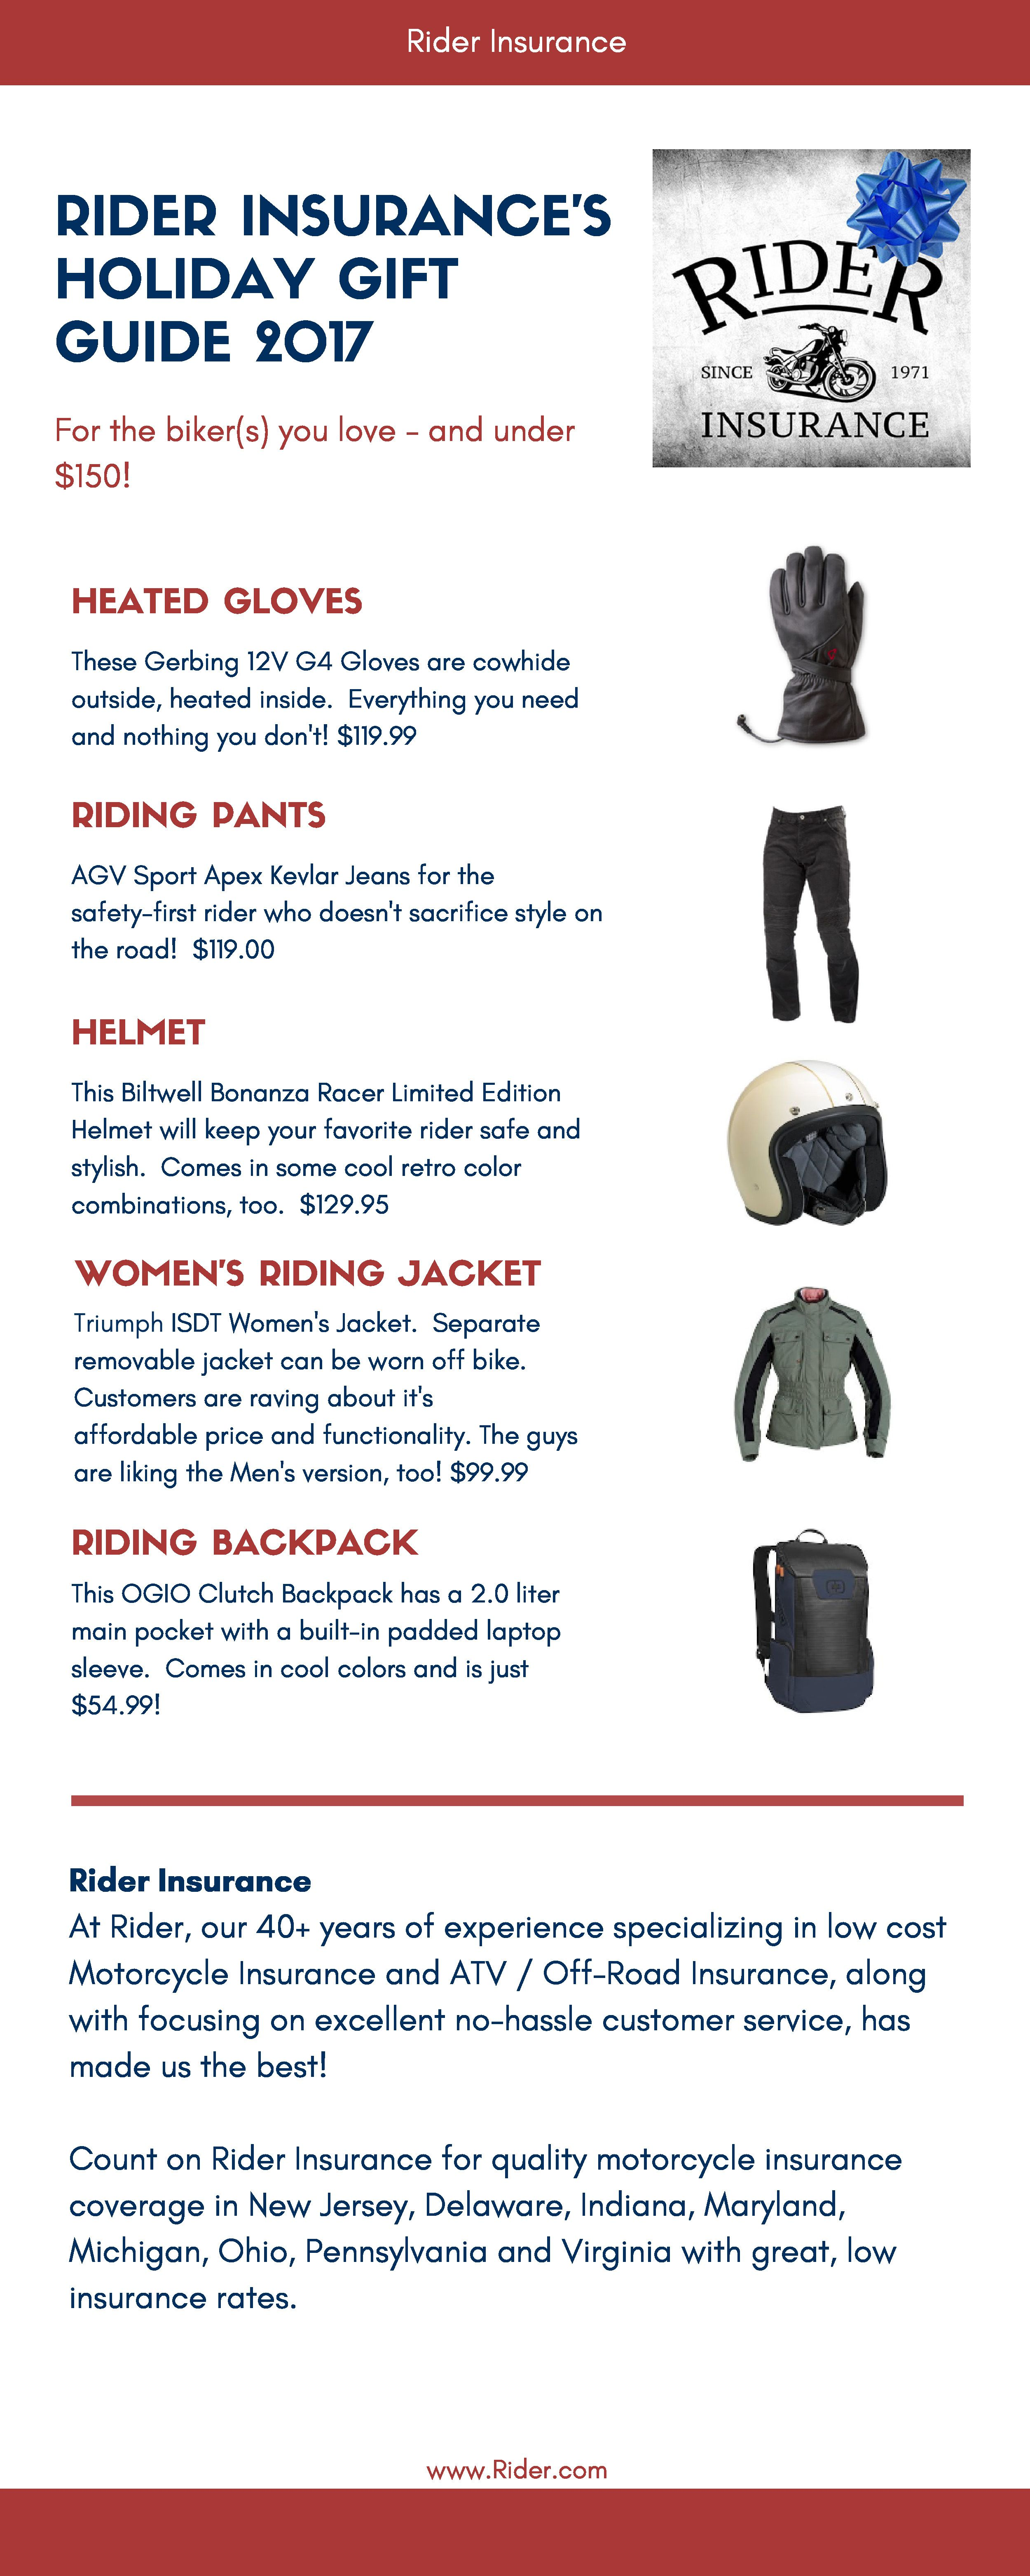 Rider Insurance S Holiday Gift Guide 2017 Motorcyclist Gift Guide